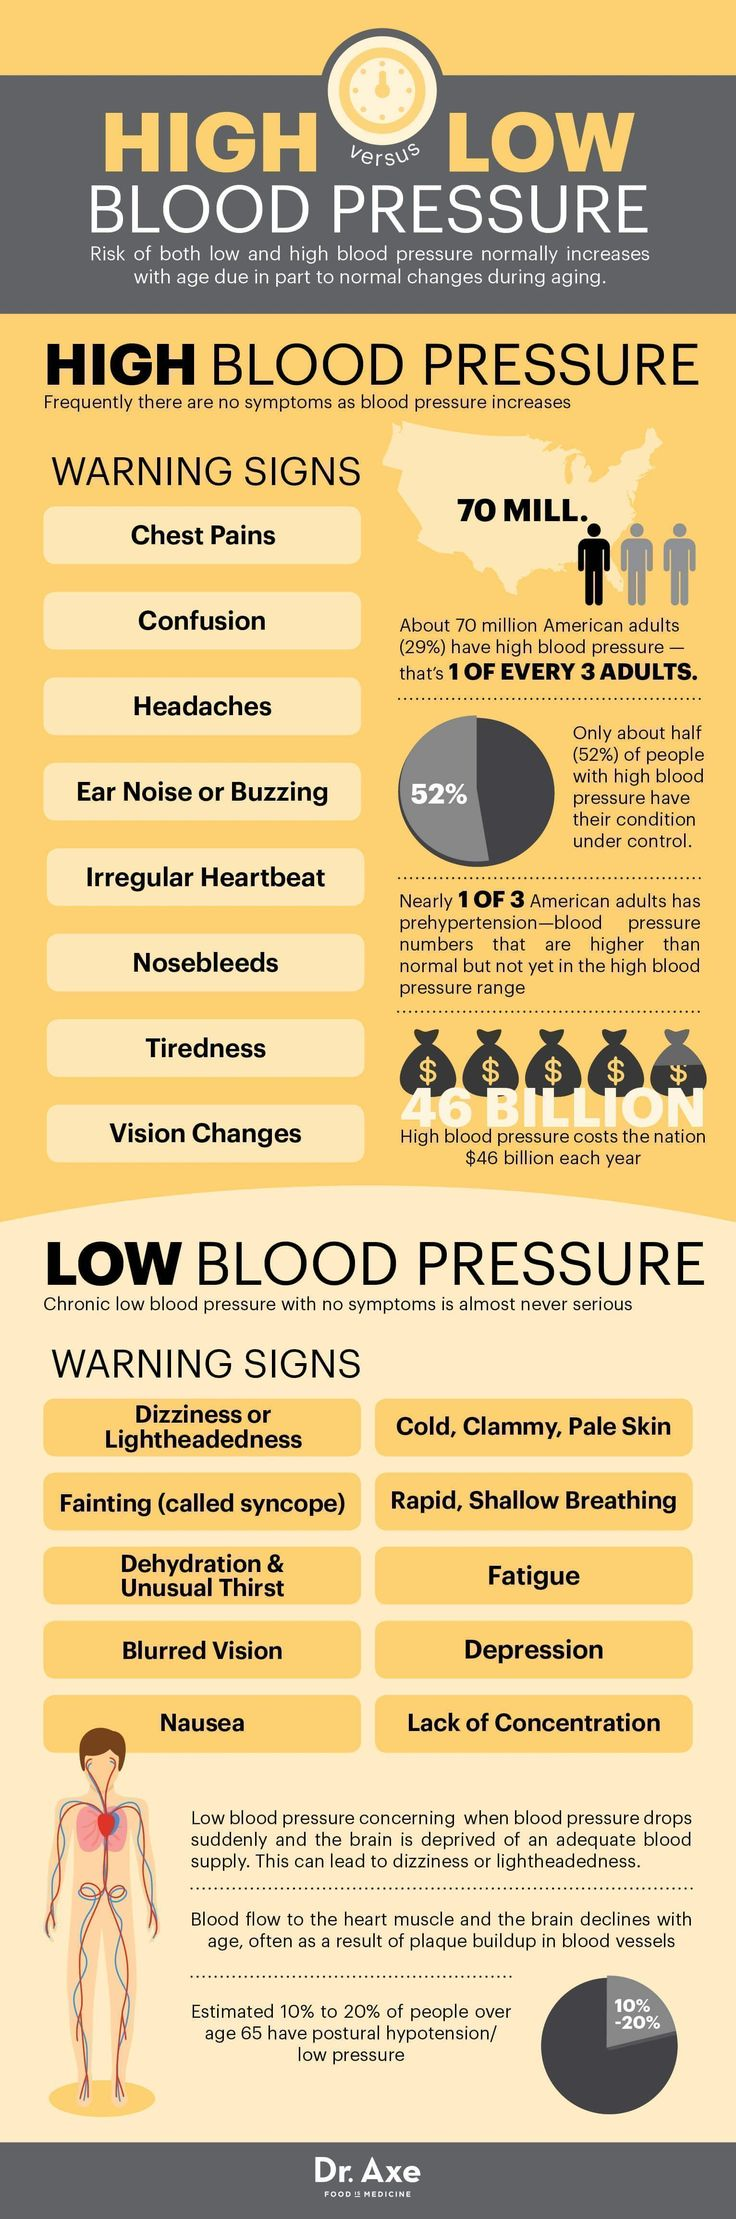 High Blood Pressure Symptoms You Can Reverse Naturally 3 Easy Exercises Drop Blood Pressure Below 120/80 – Starting Today! Preventing Diseases Such As Stroke, Heart Attack, And Kidney Failure 3 Easy Exercises Drop Blood Pressure Below 120/80 – Starting Today! Preventing Diseases Such As Stroke, Heart Attack, And Kidney Failure 3 Easy Exercises Drop Blood Pressure Below 120/80 – Starting Today! Preventing Diseases Such As Stroke, Heart Attack, And Kidney Failure #heartdiseaseexercise